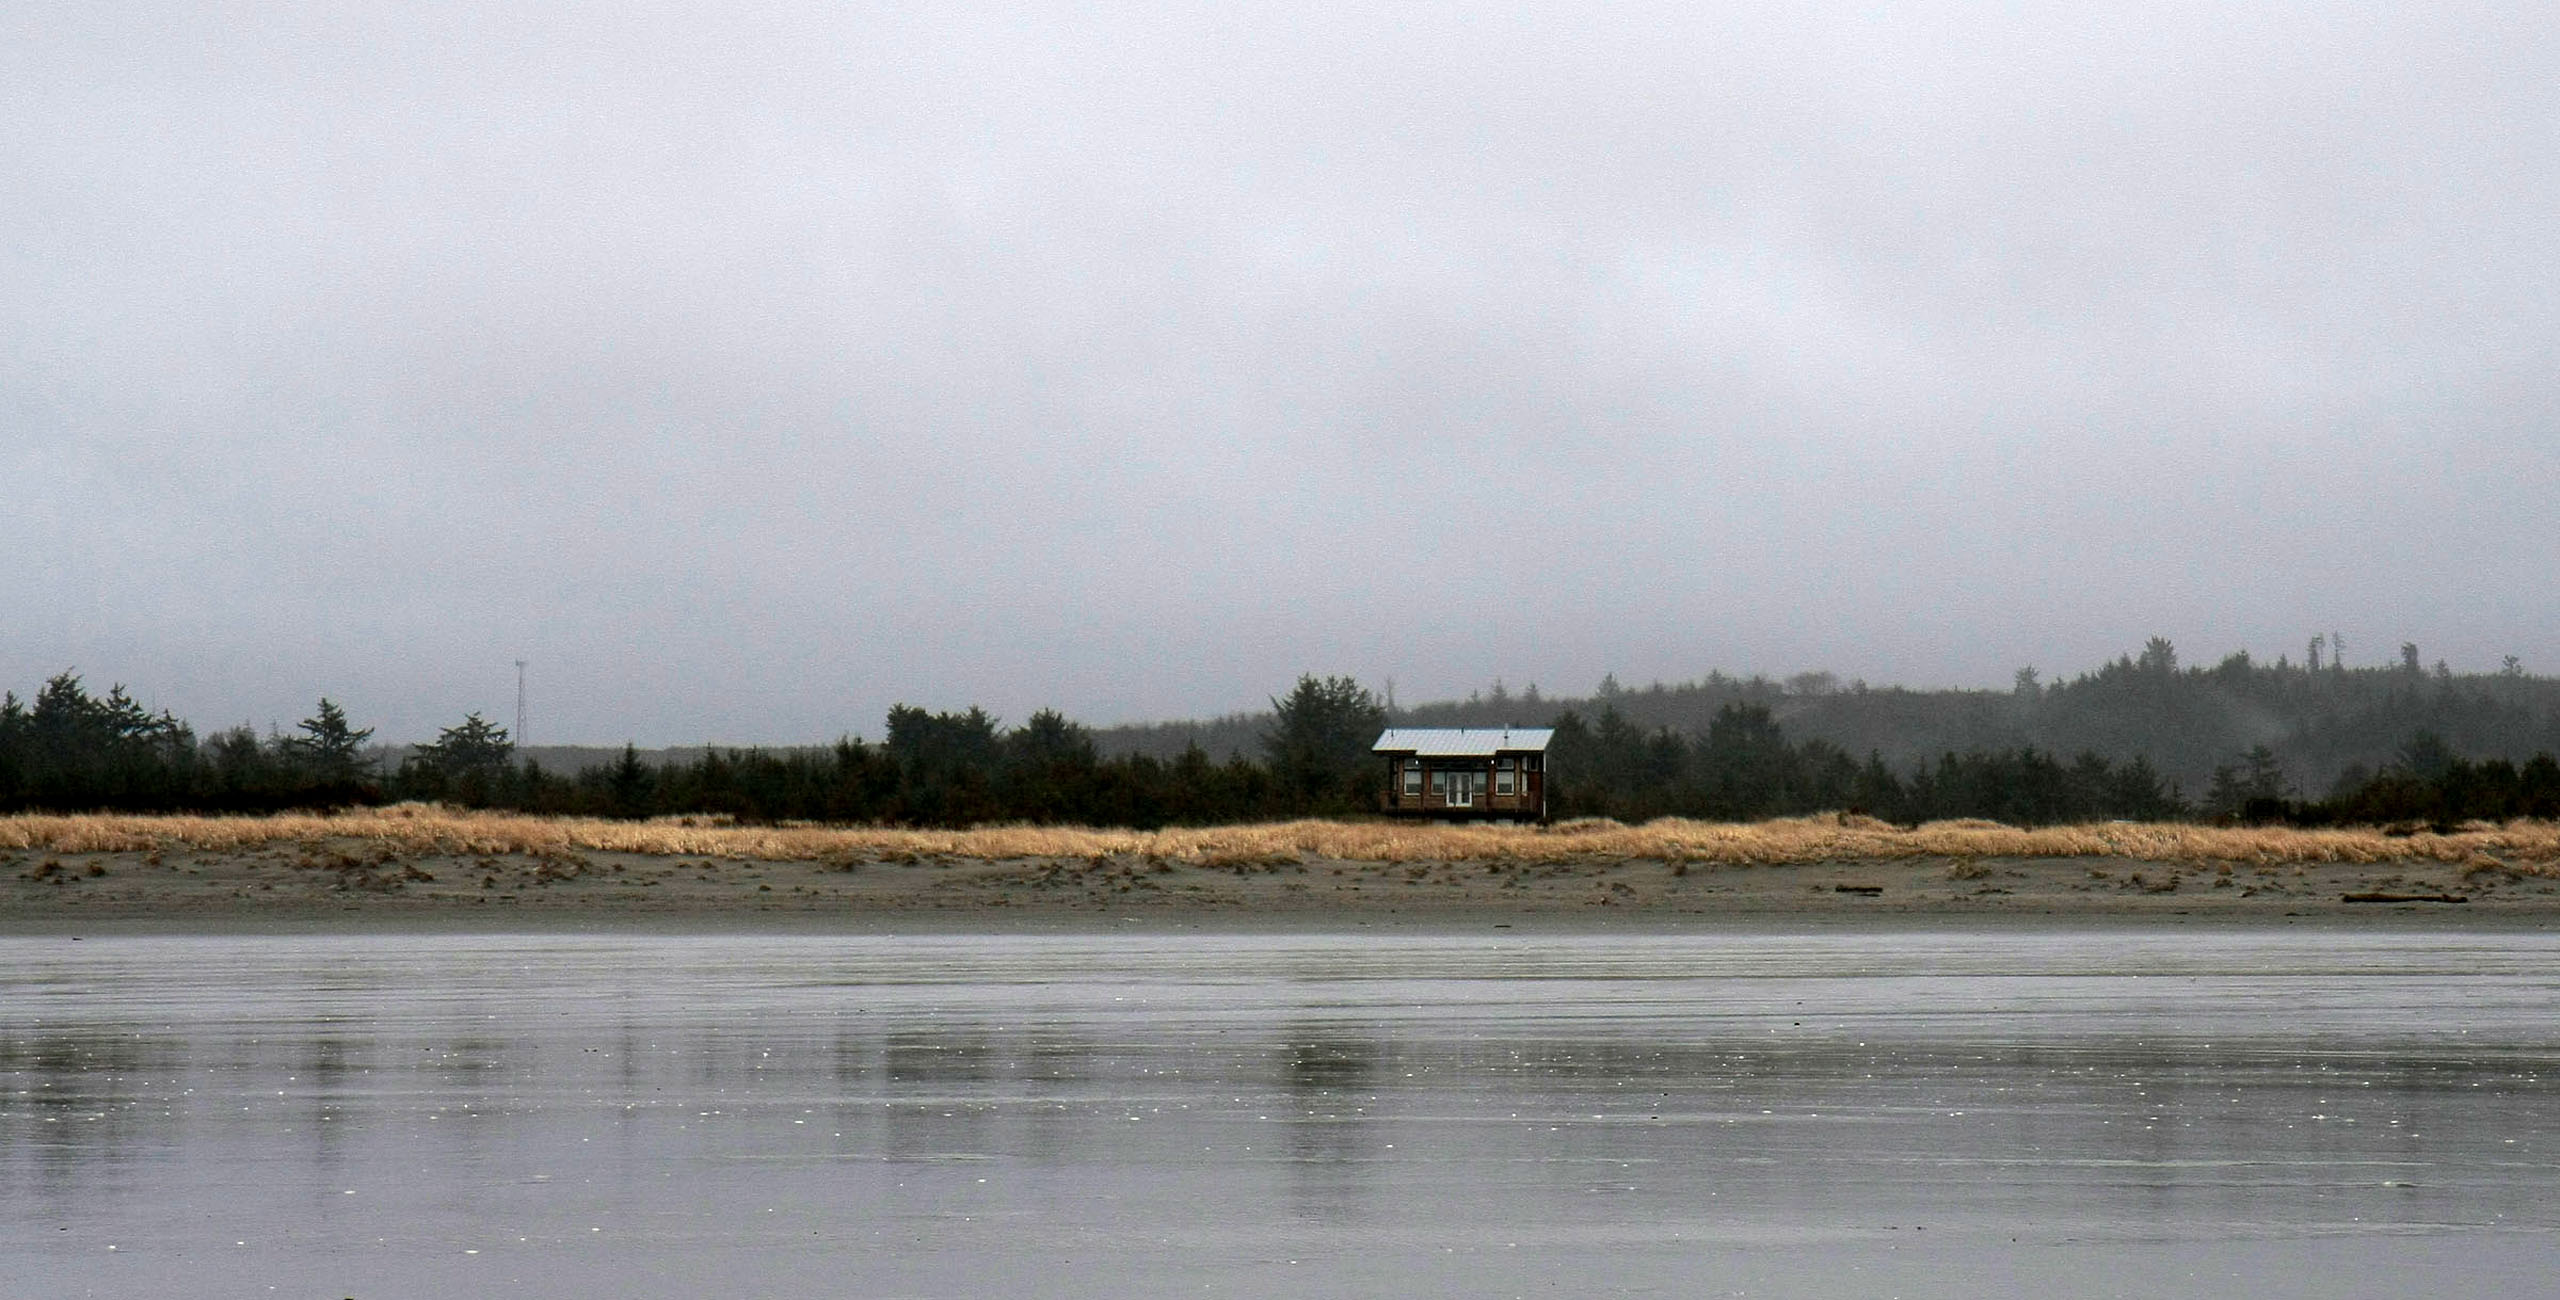 Beach House - Grayland, WA